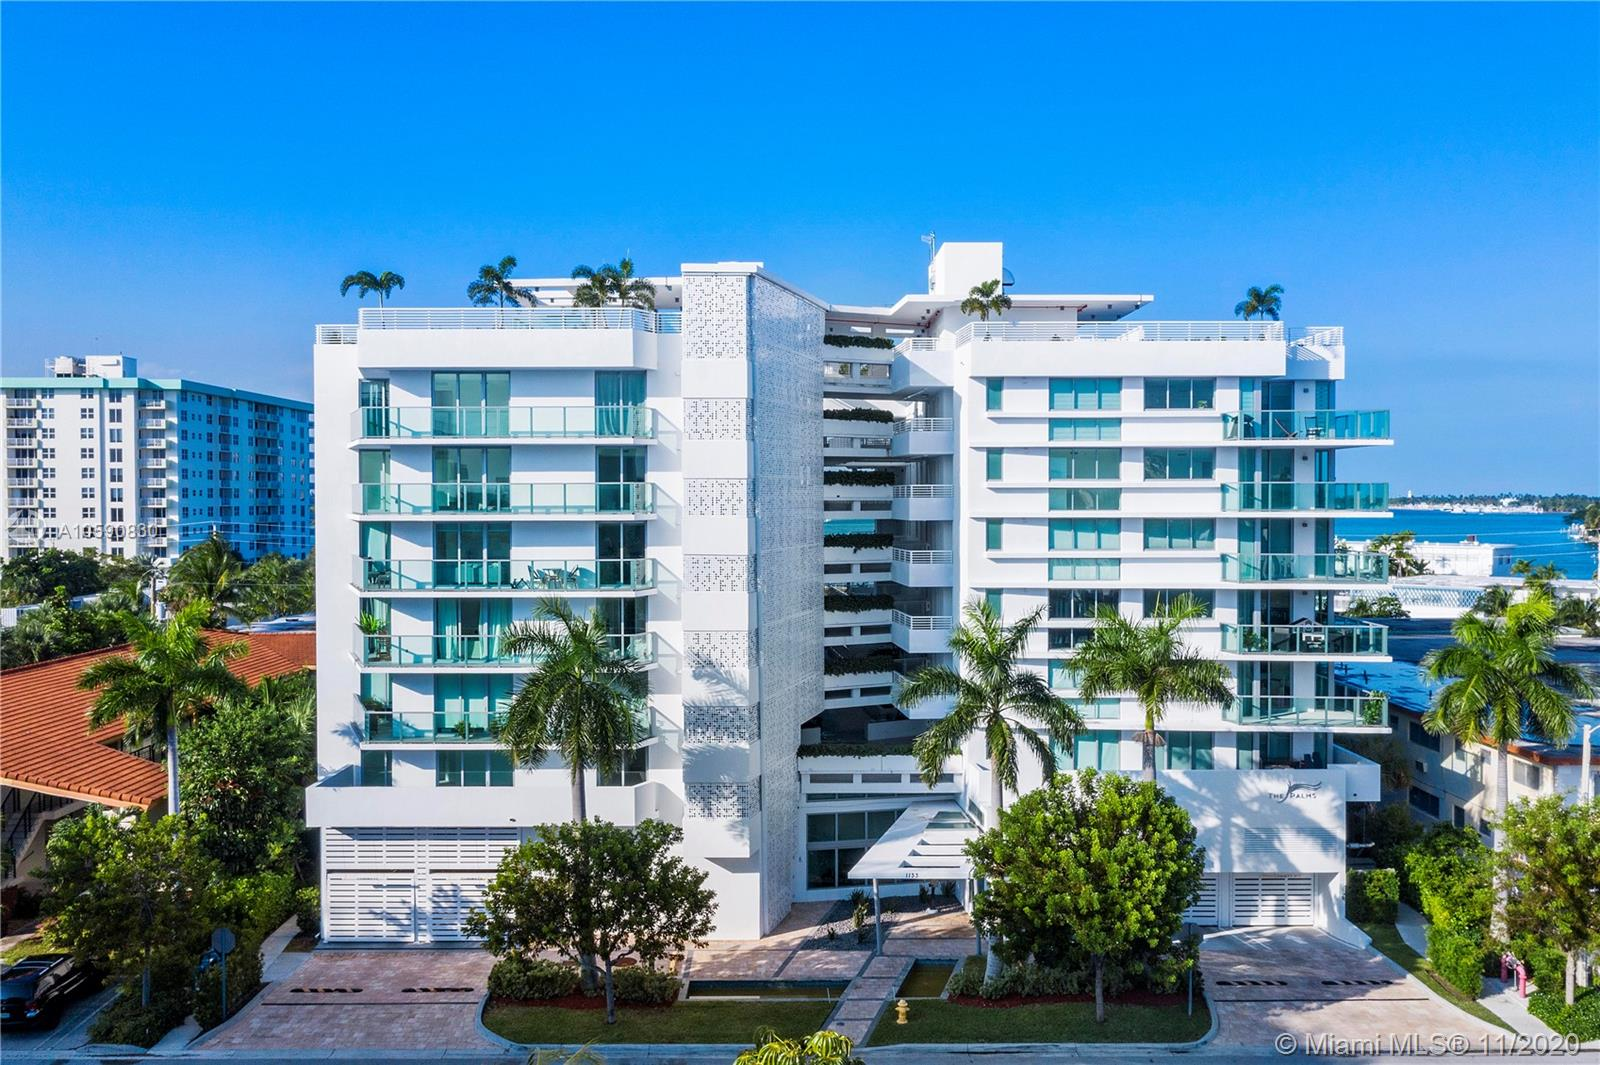 Brand new boutique style building in Bay Harbor Islands. Unit has 2 bedrooms and 2 bathrooms. Offers stainless steel appliances, tile throughout, washer and dryer inside, impact windows and wine cooler. Gorgeous views from the rooftop infinity pool and hot tub. Unit comes with 2 parking spaces (#79, #80). Walking distance to shopping, places of worship, and A+ Bay Harbor K-8 Education Center. Great for investment opportunity. Unit is currently rented through January 31, 2021 at $2,800 per Month. 24 hour notice needed for showing. Private rooftop terrace with electric grill and sink included with the purchase of this unit.